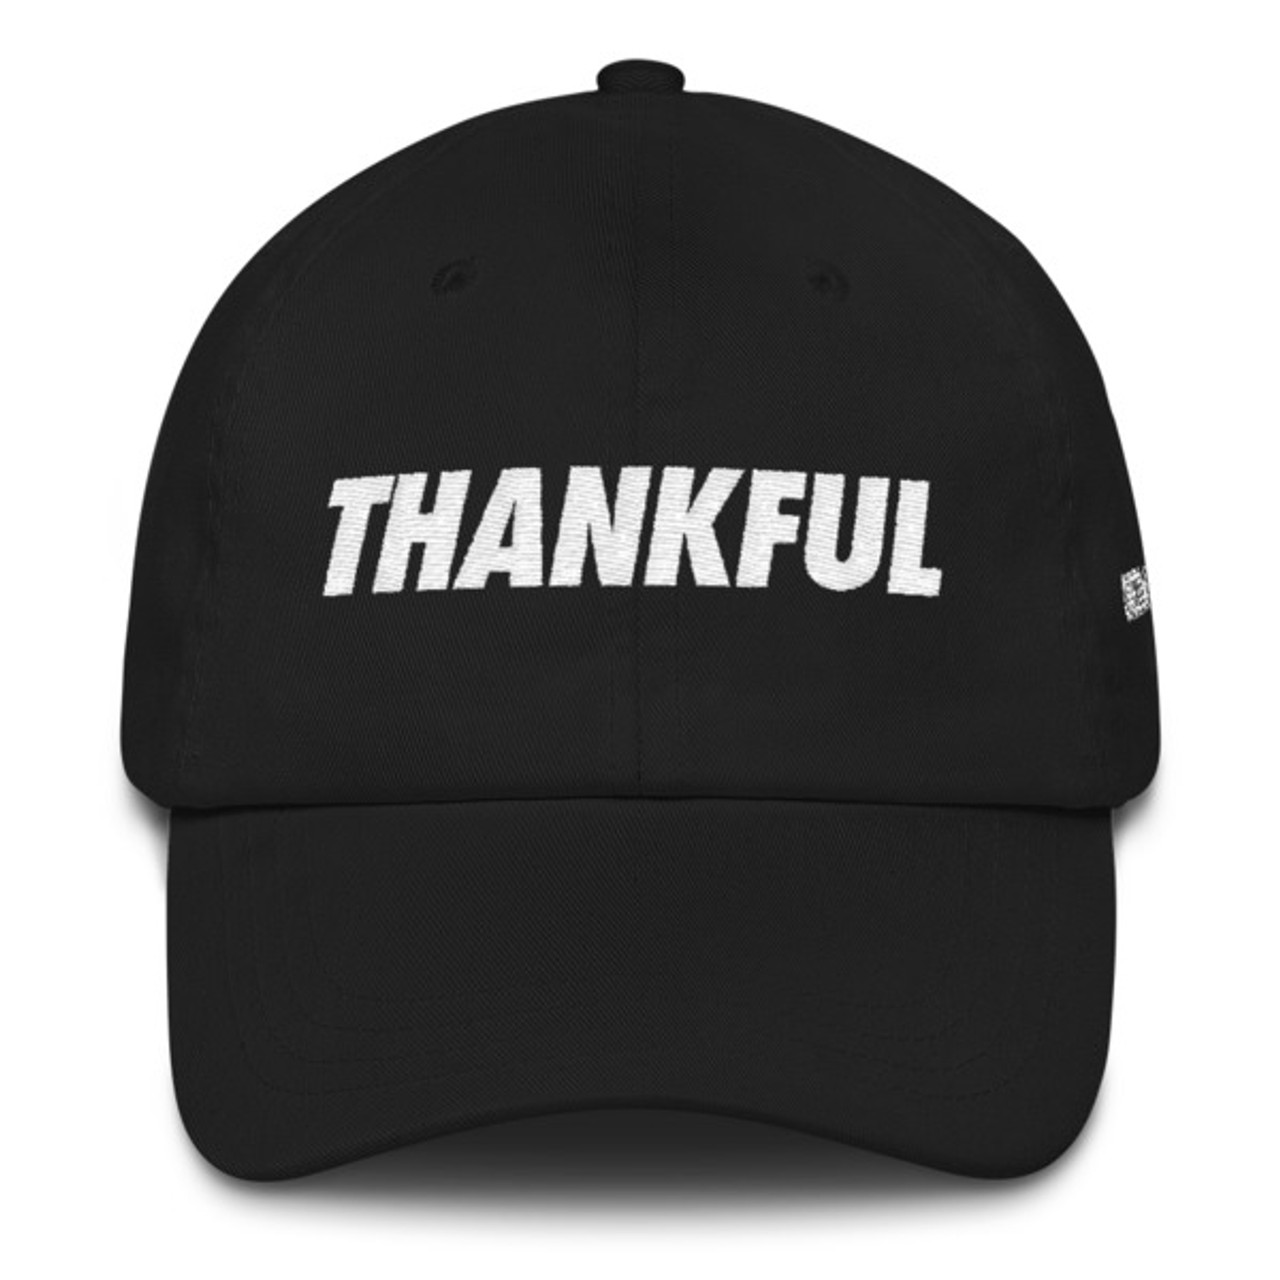 THANKFUL - Dad Hat